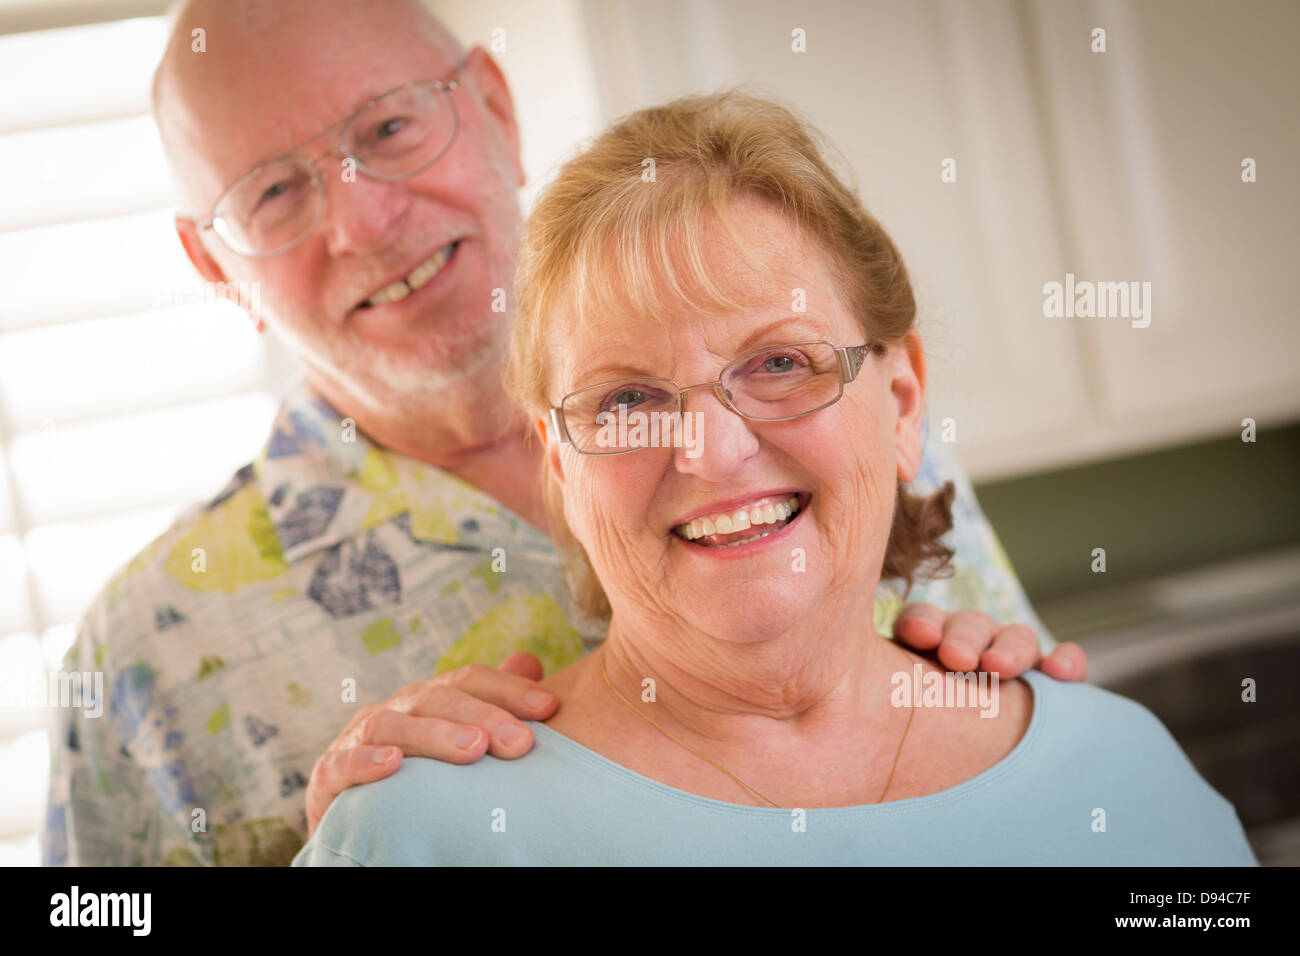 Happy Caucasian Senior Couple Portrait Inside Kitchen. - Stock Image